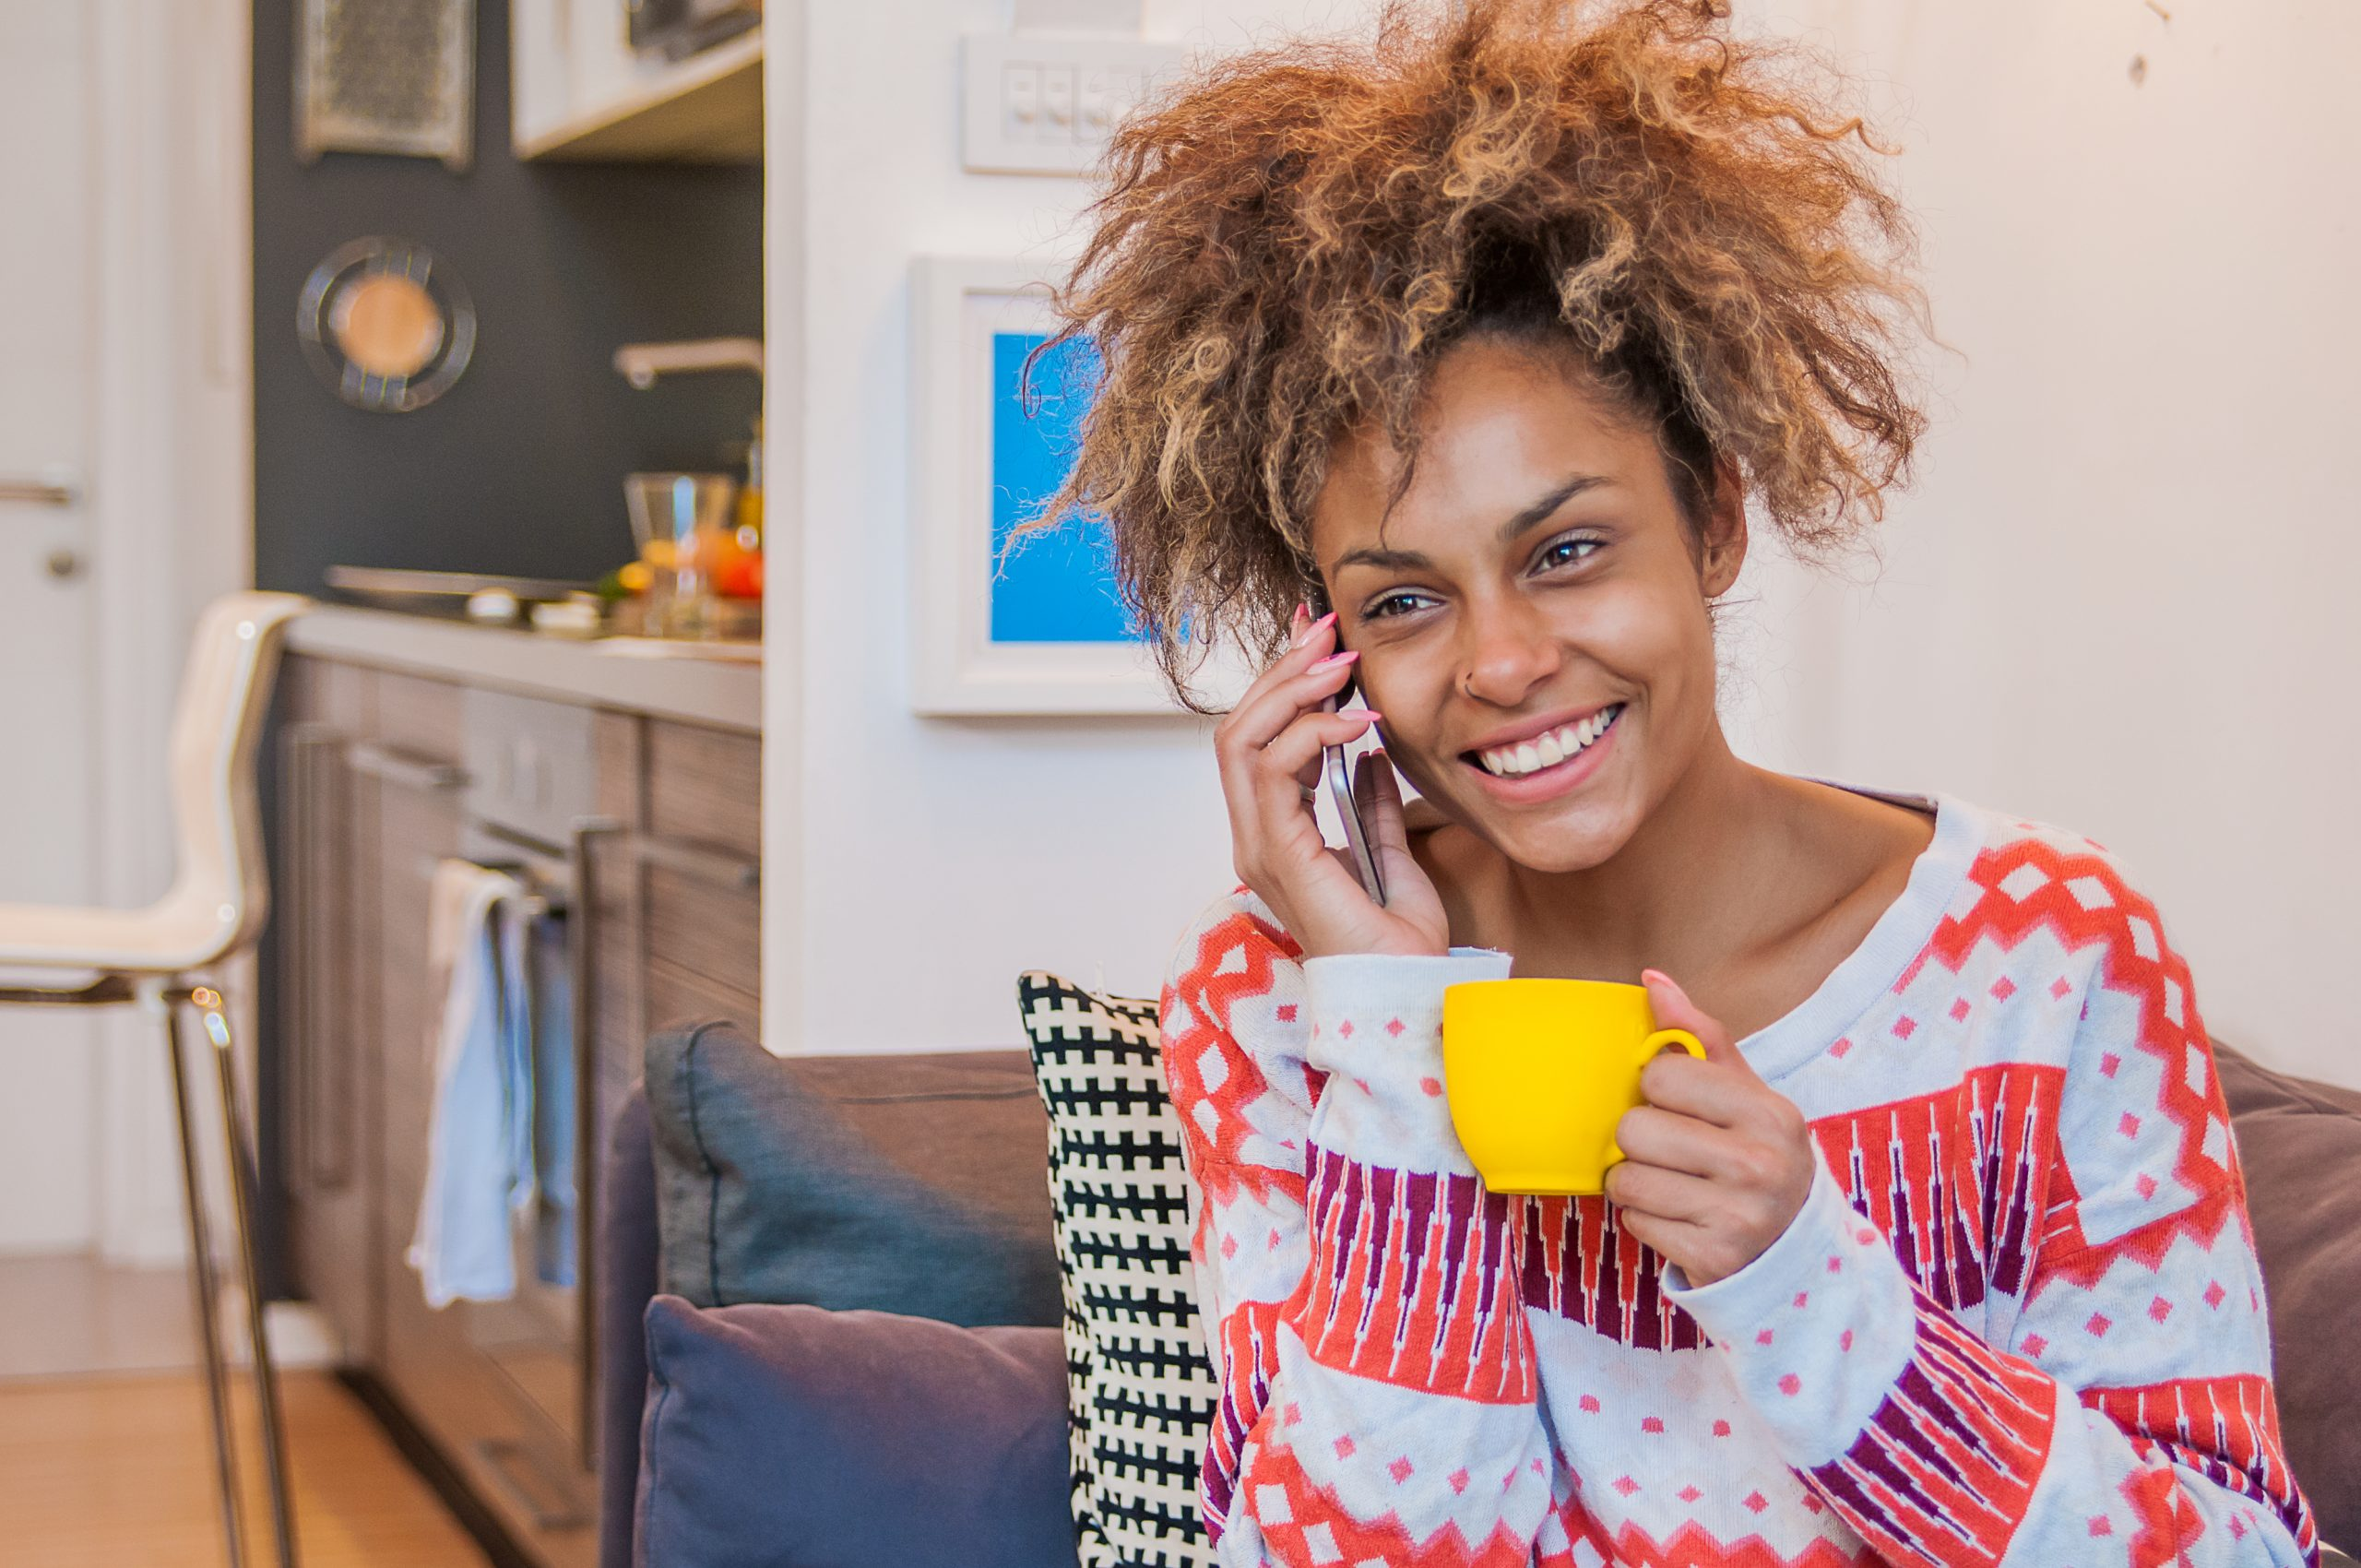 A mixed race woman holding a coffee cup and talking on the mobile phone with smile while sitting on the couch